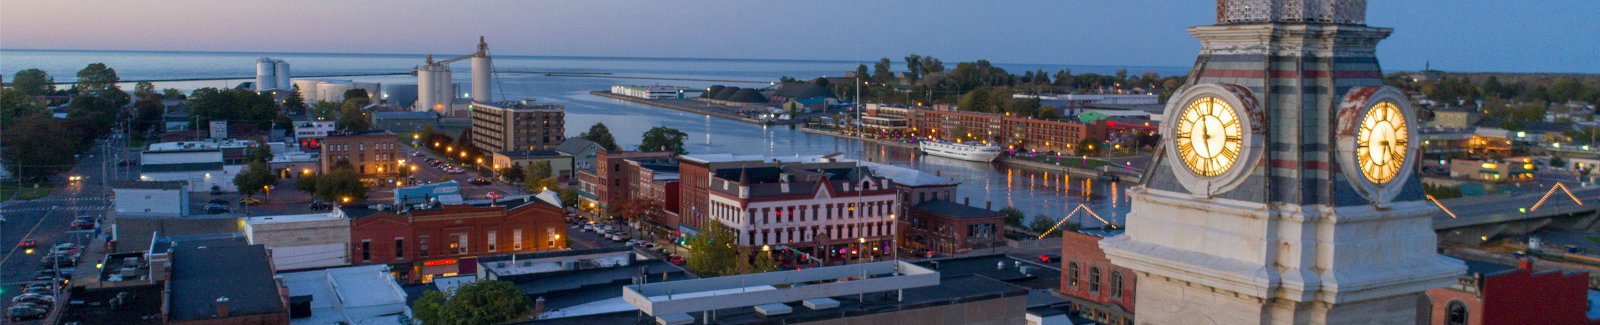 Aerial view of Oswego City Hall at sunset in the foreground, with the view of the Oswego River, harbor/pier, and horizon in the background.